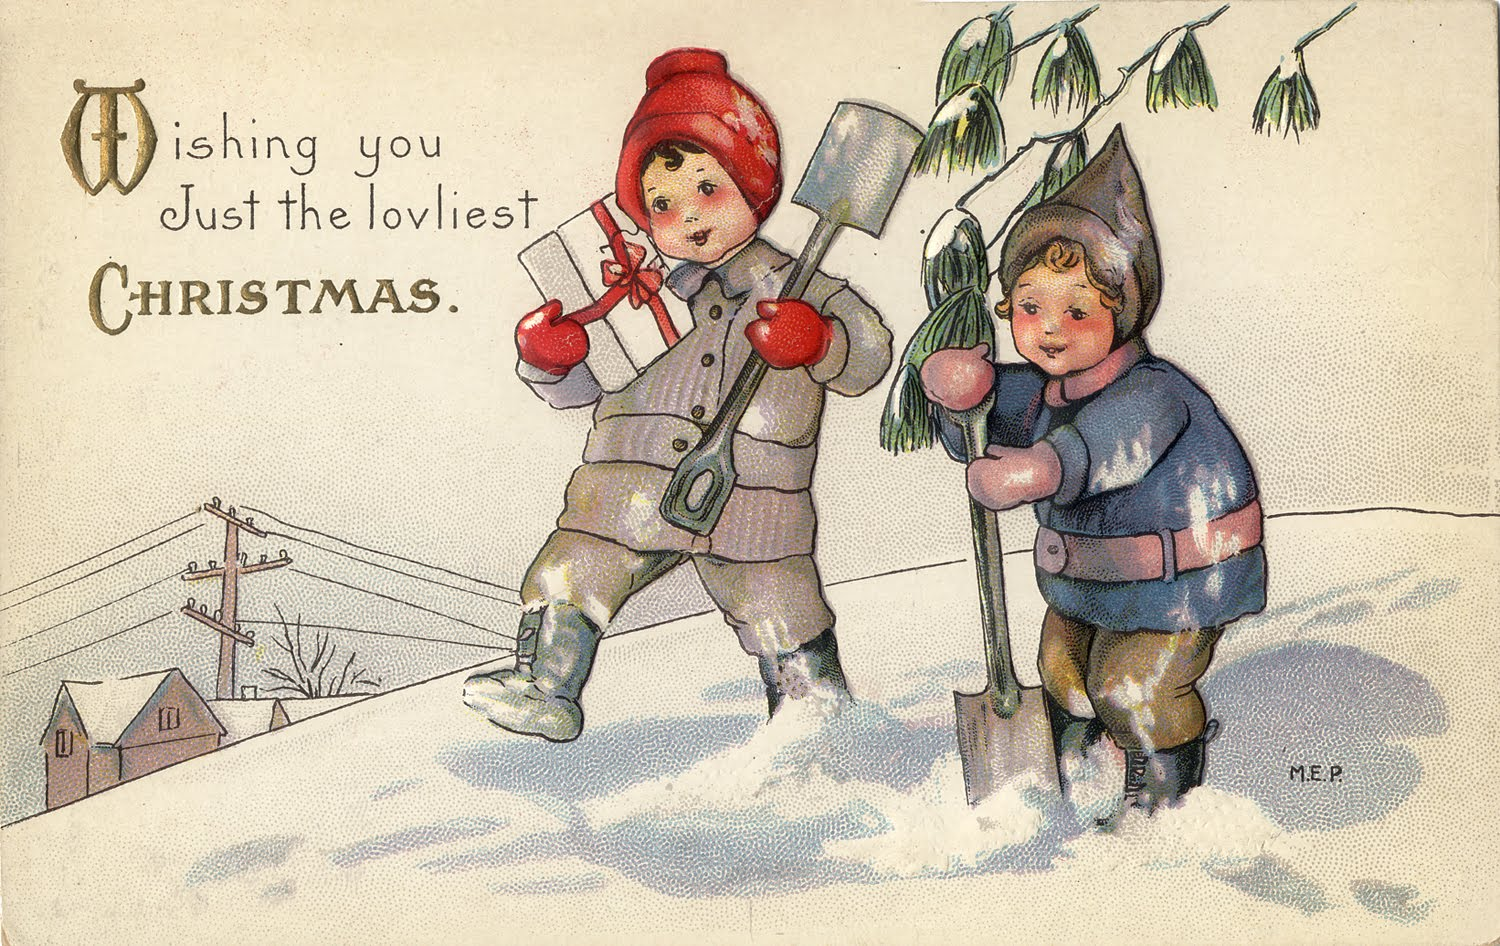 Christmas Greetings, Vintage Style! - Thoughts from an Evil Overlord